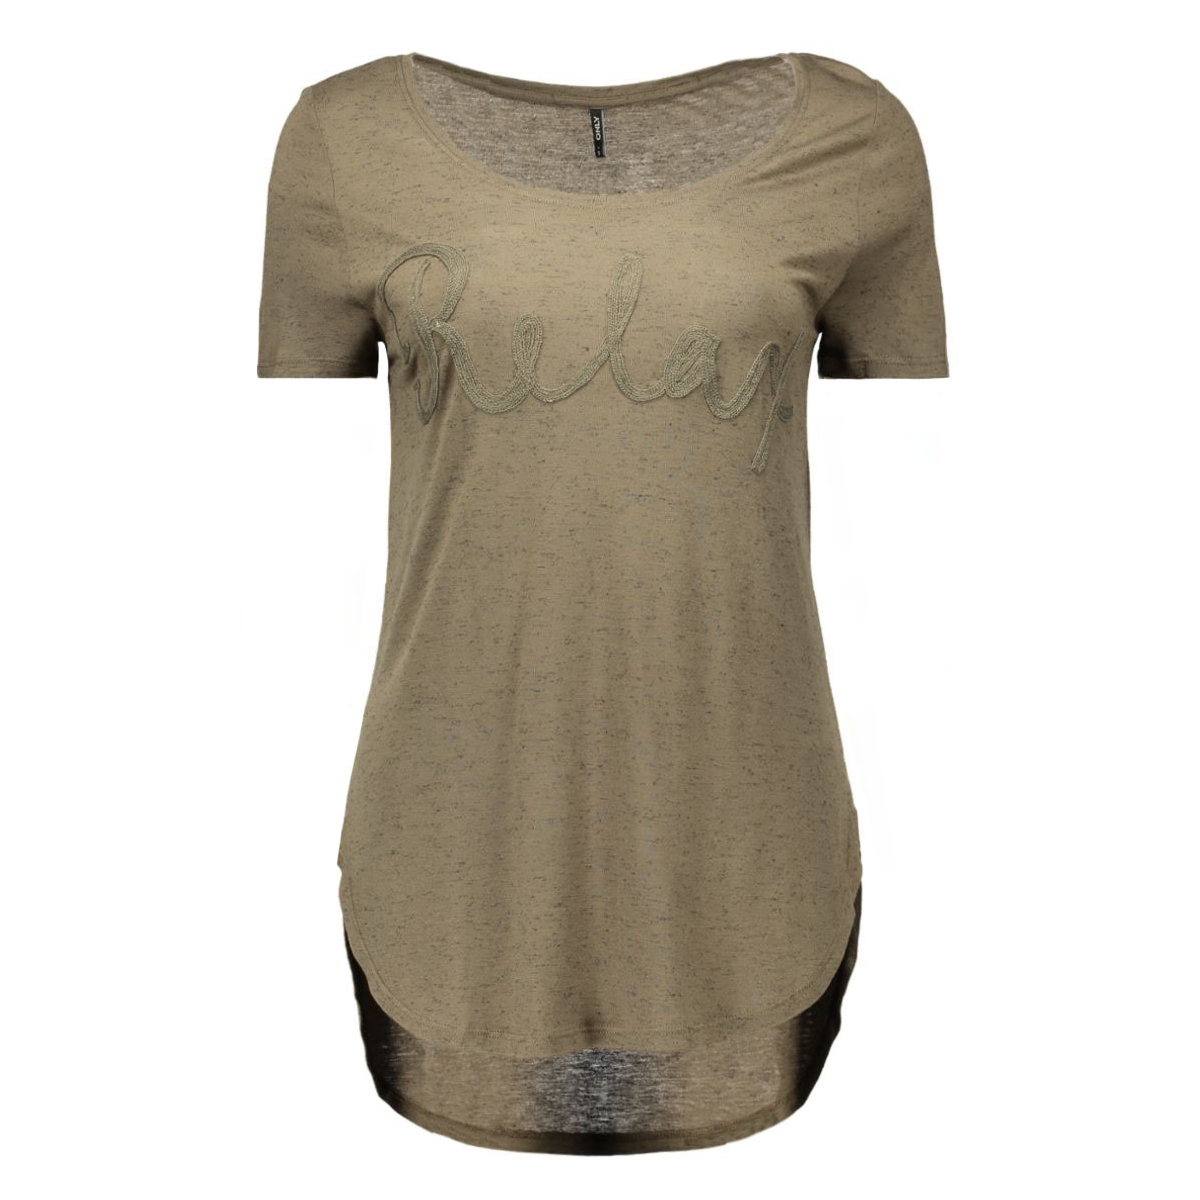 onlhelle s/s top ess 15126957 only t-shirt tarmac/relax